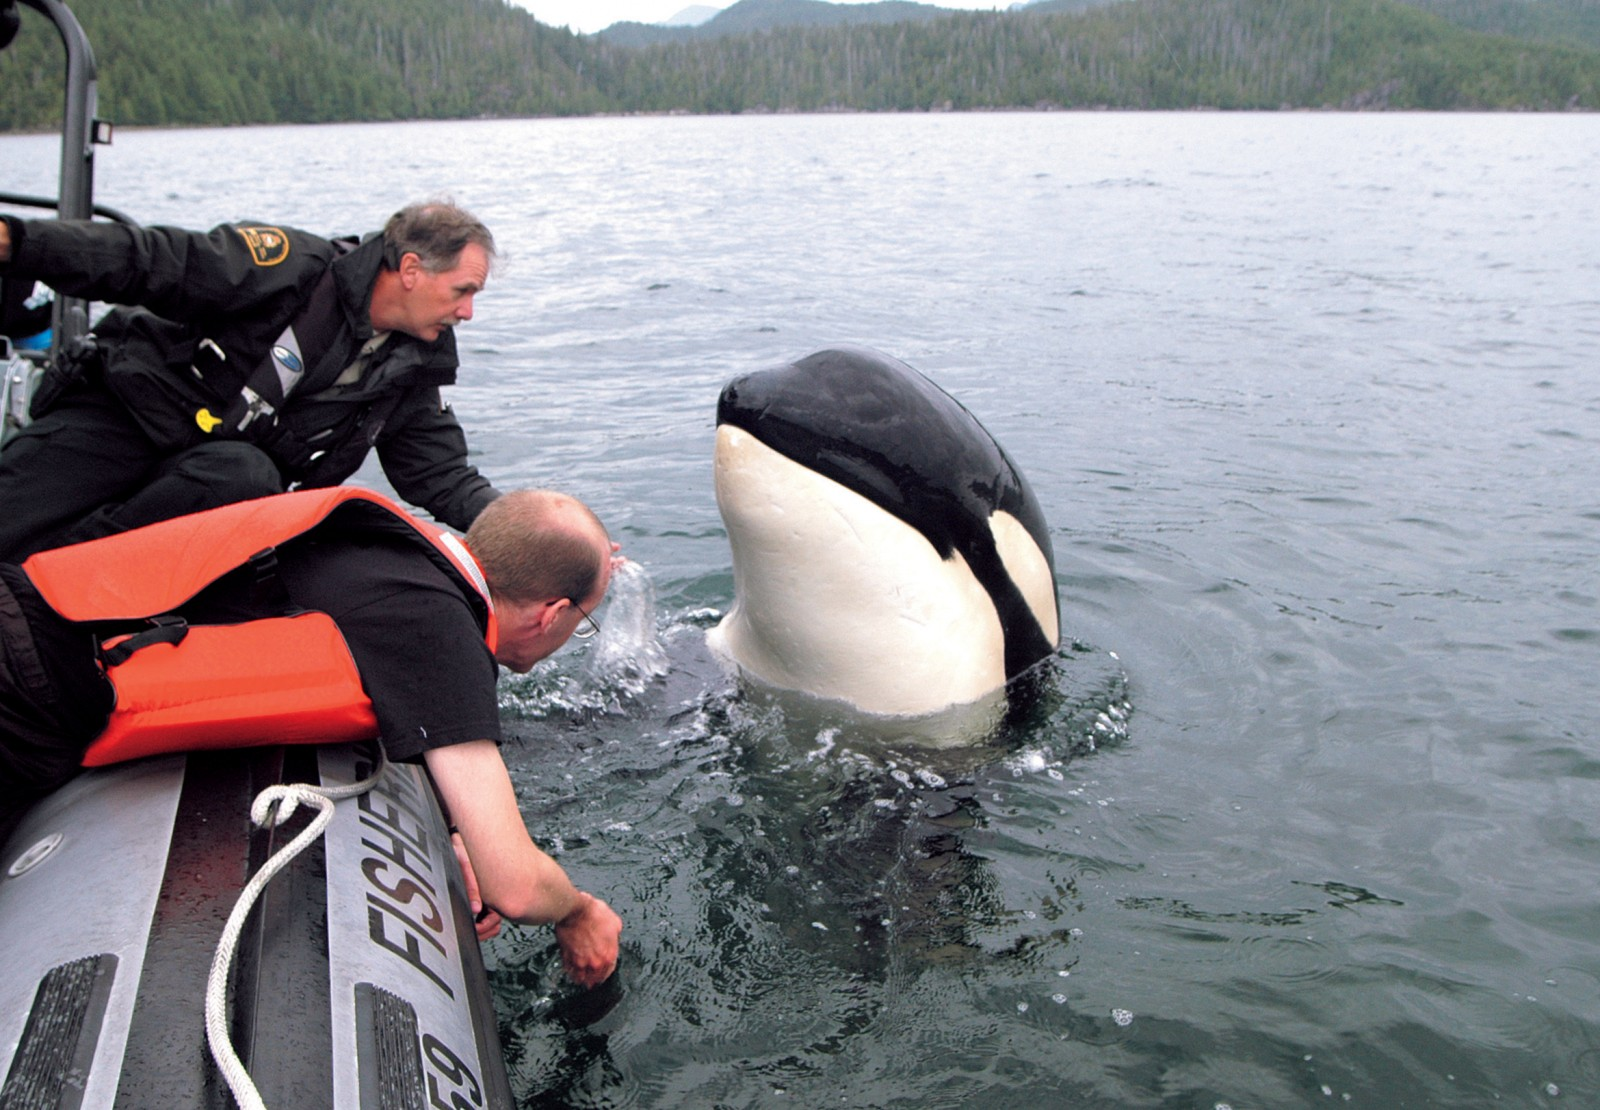 Luna, a six-year-old orca in British Columbia, lives apart from the other orca and seeks out people for company. Here he is spyhopping next to a Canadian fisheries boat.